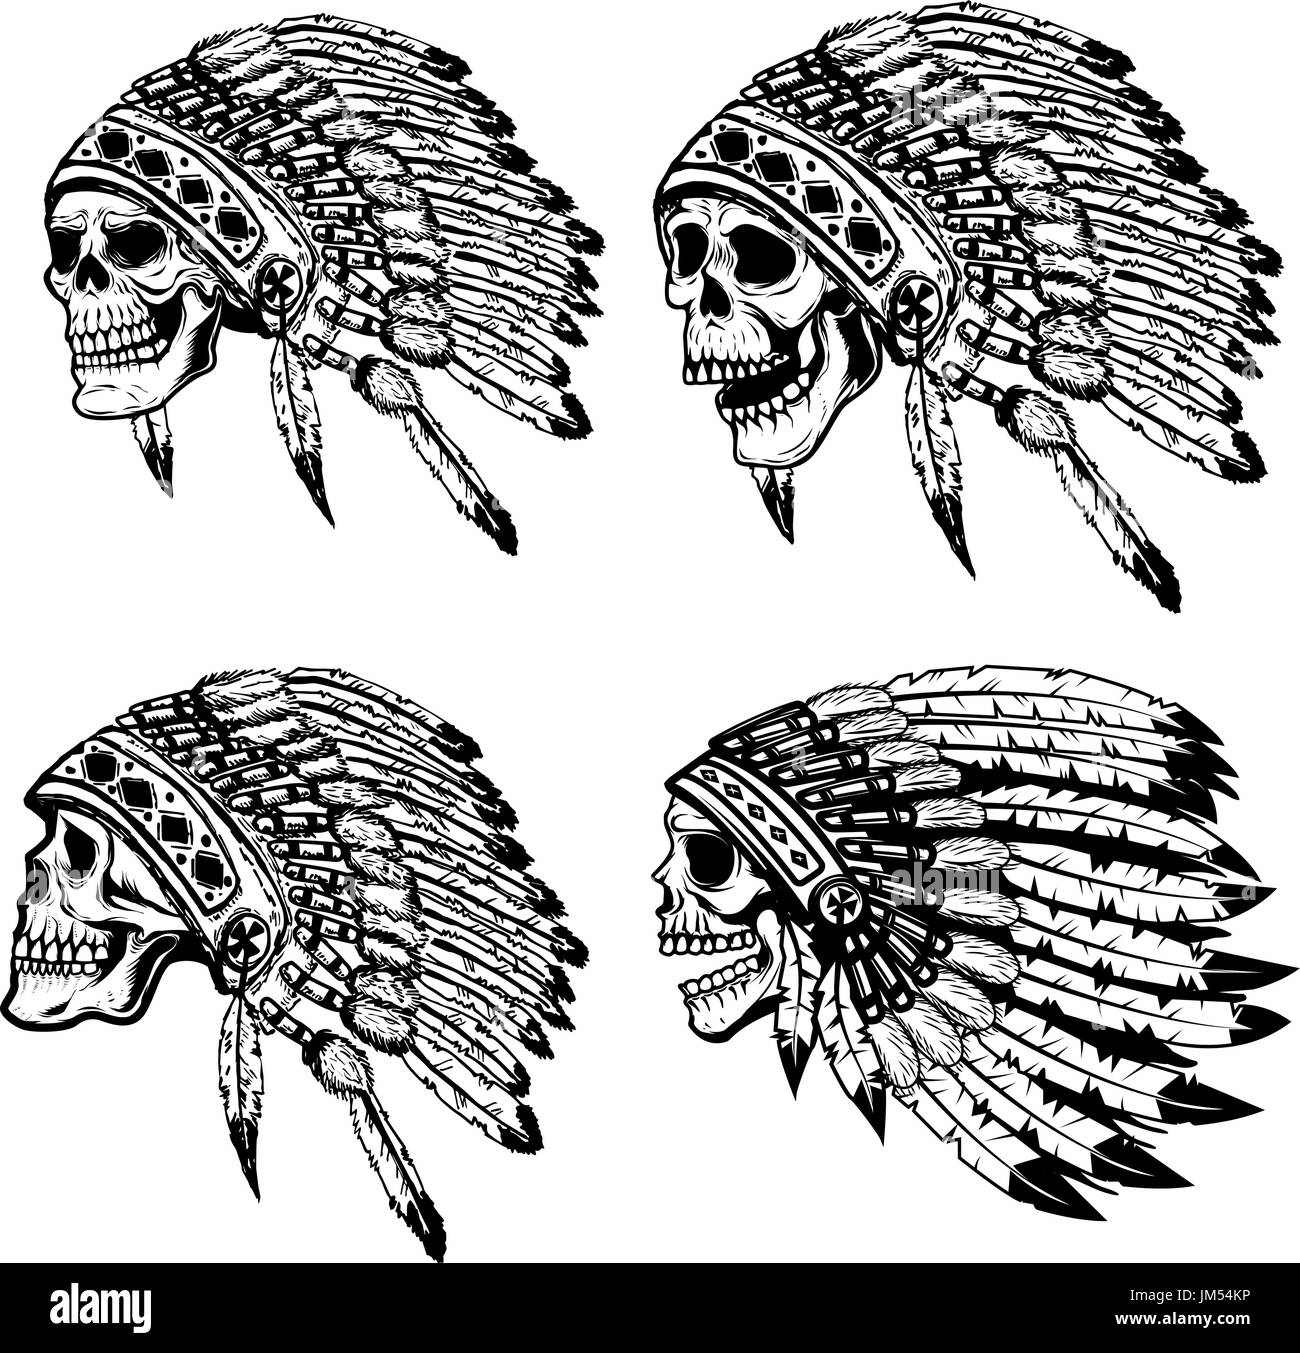 Set of the skulls in native american headdress. Design elements for poster, t-shirt. Vector illustration - Stock Image